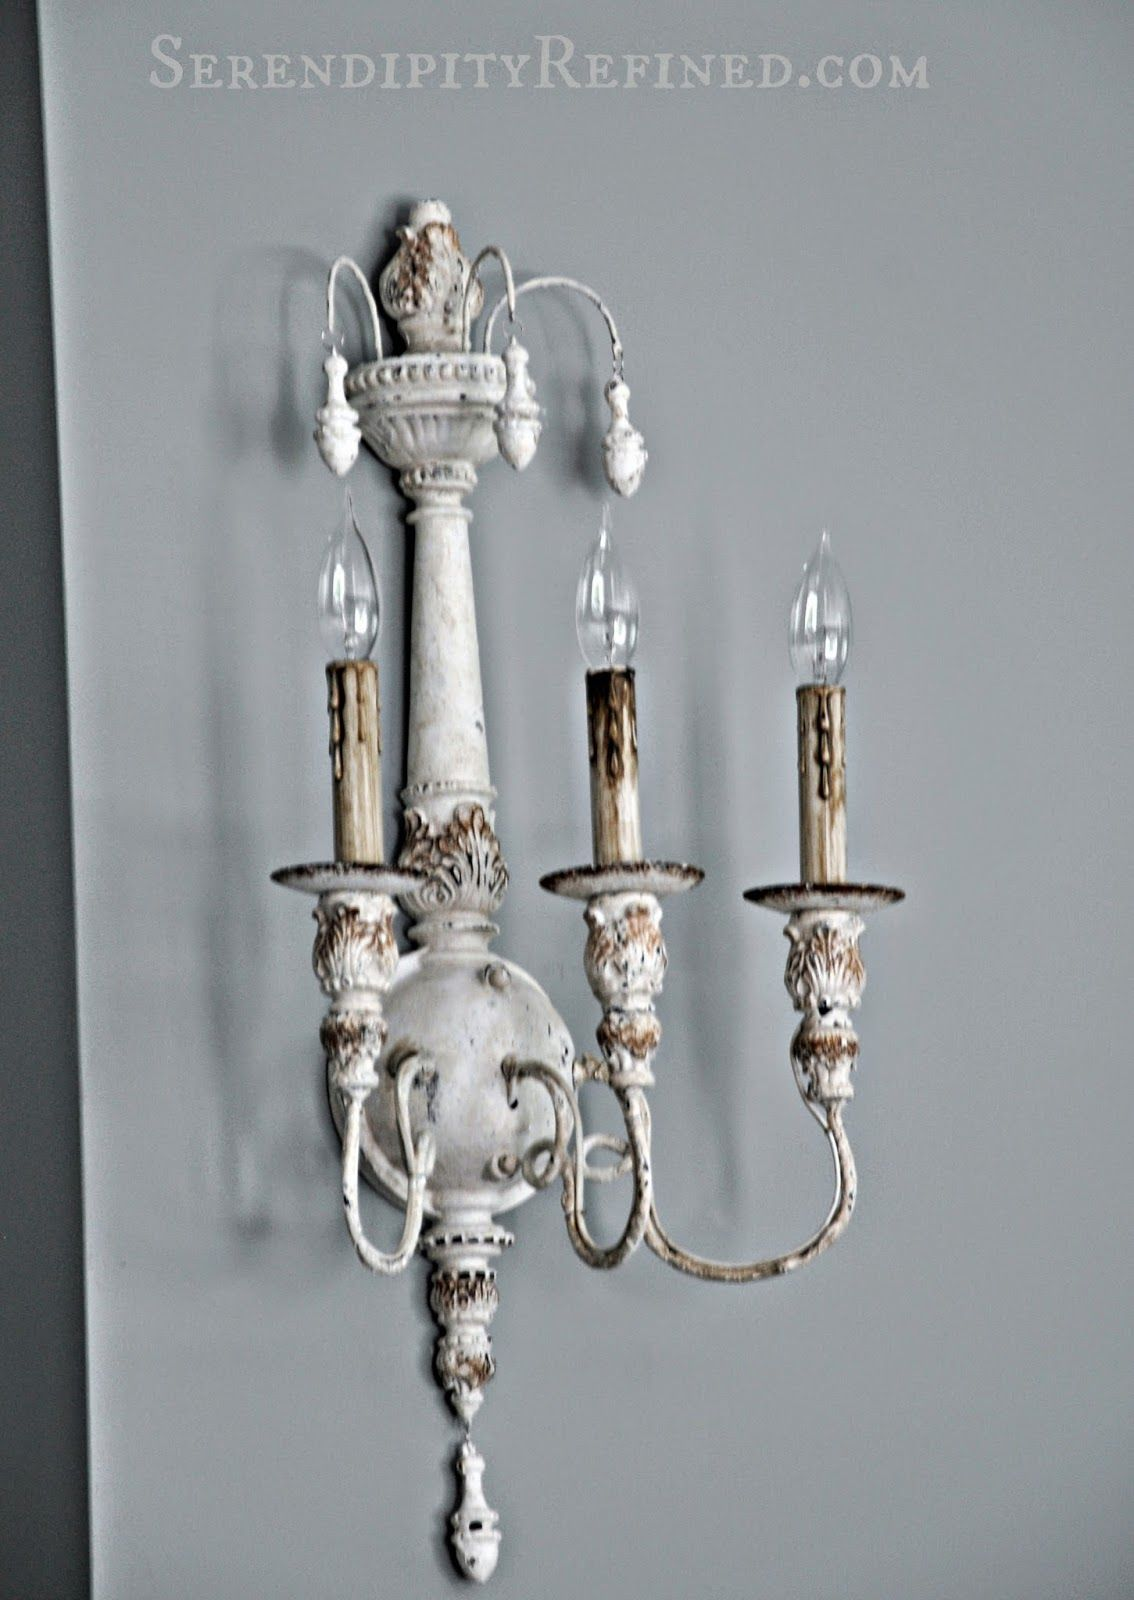 Serendipity Refined French Country Light Fixtures For The Farmhouse Dining Room